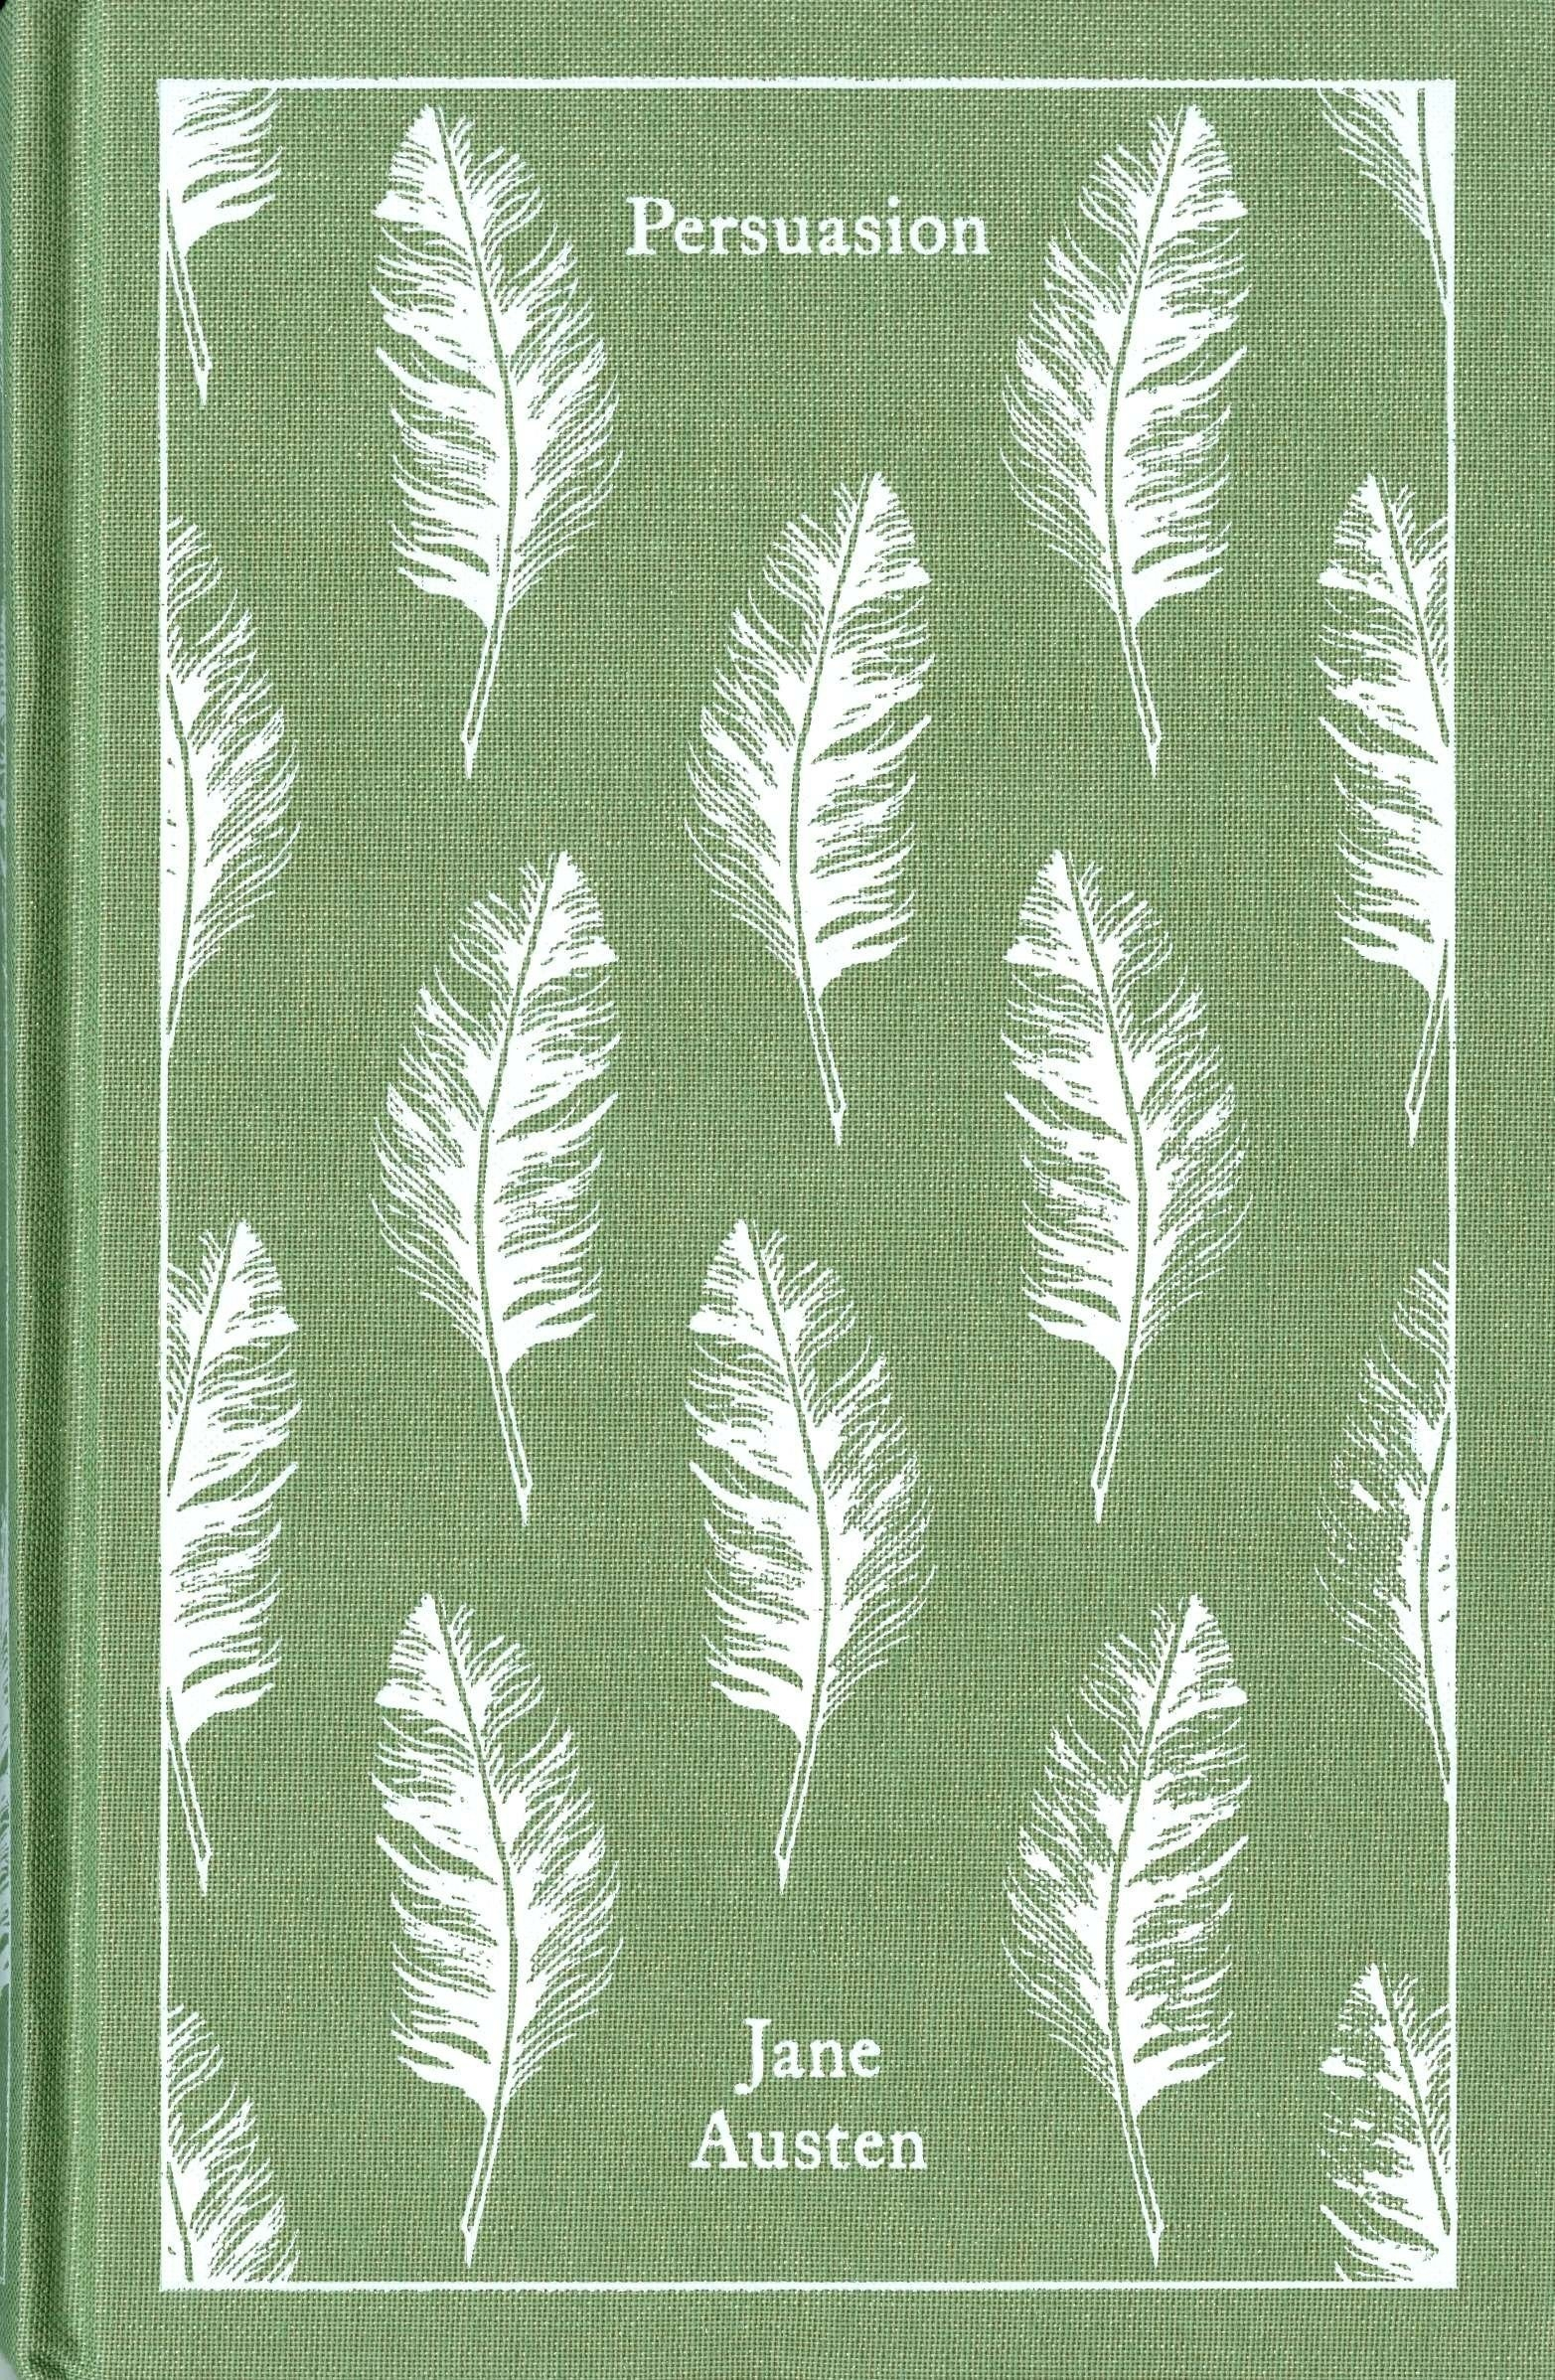 The green book with feathers on the cover